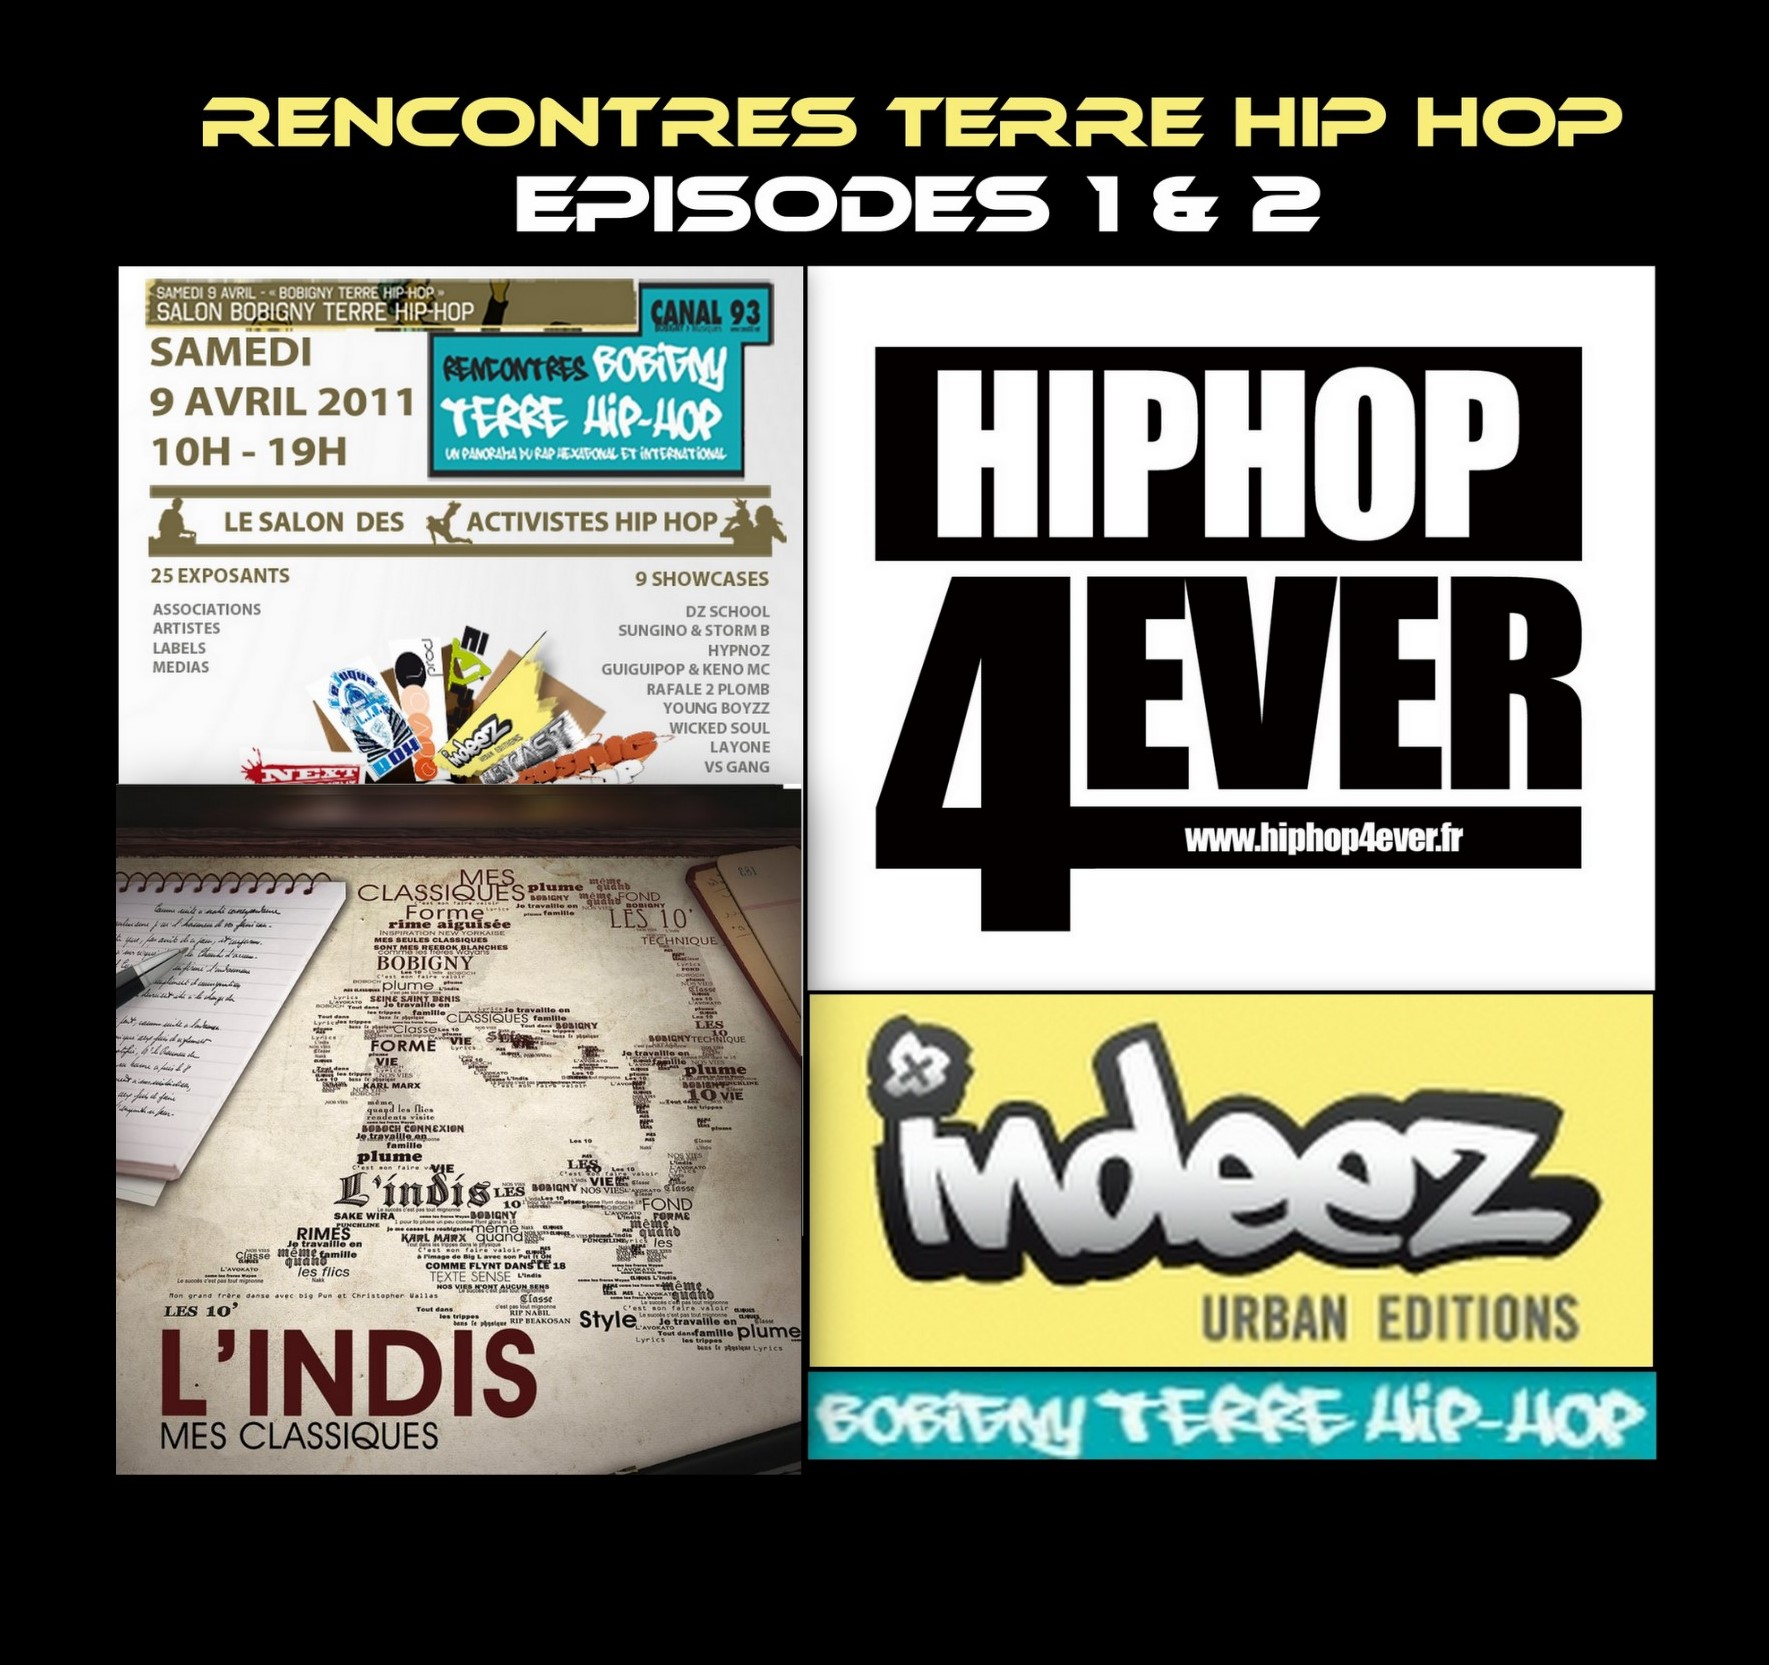 rencontres-t-hh-ep-1-2